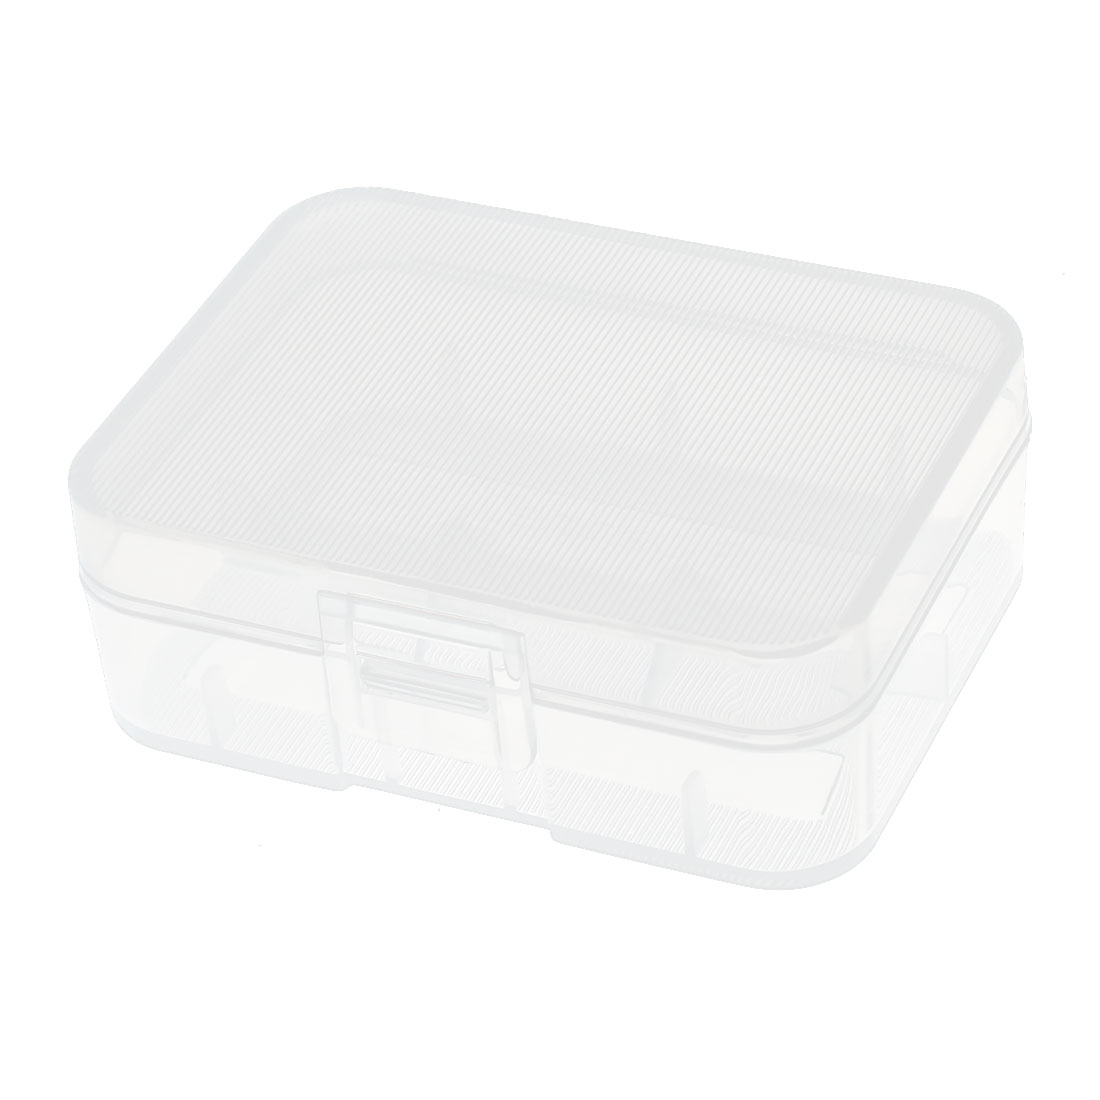 Clear Rectangle Storage Box Case Container for 2 x 18500 Batteries